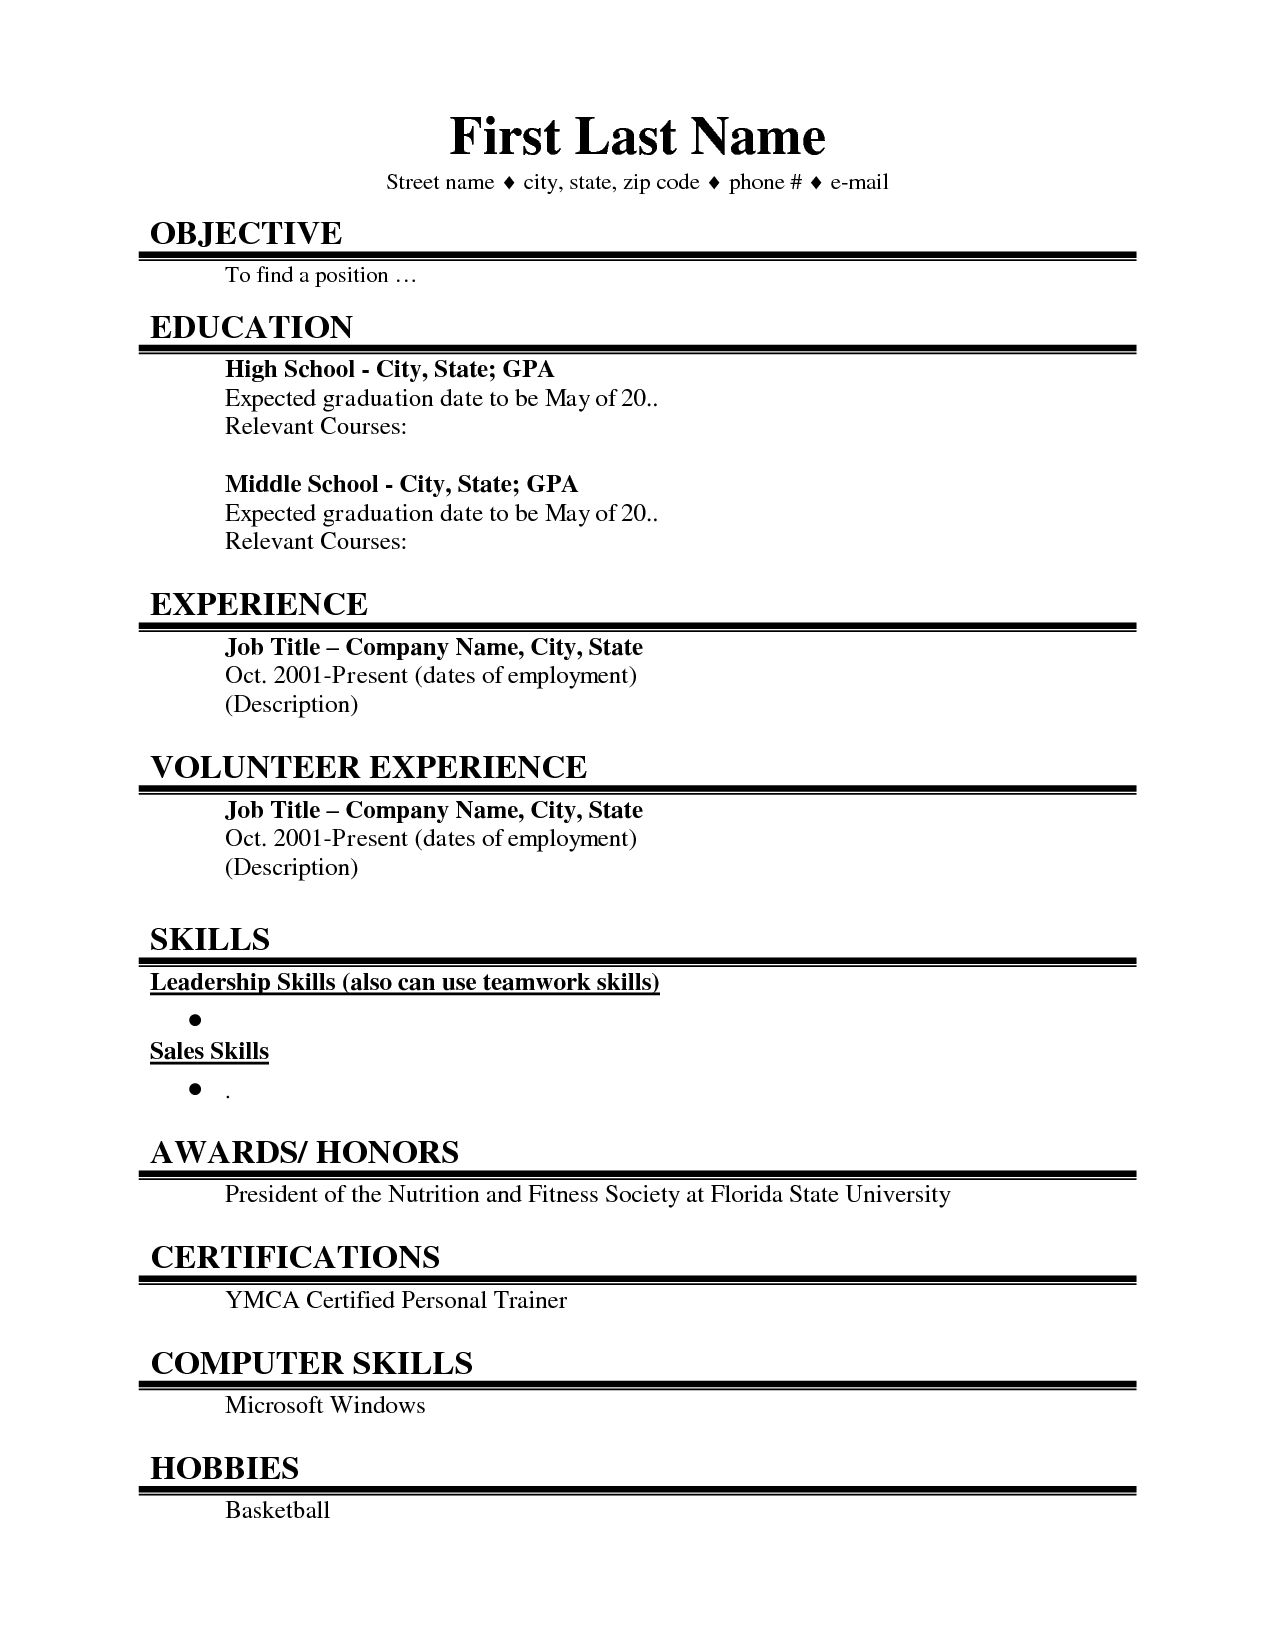 How To Make A Simple Job Resume Example Of Cover Letter Resume Cover - How to make a simple job resume